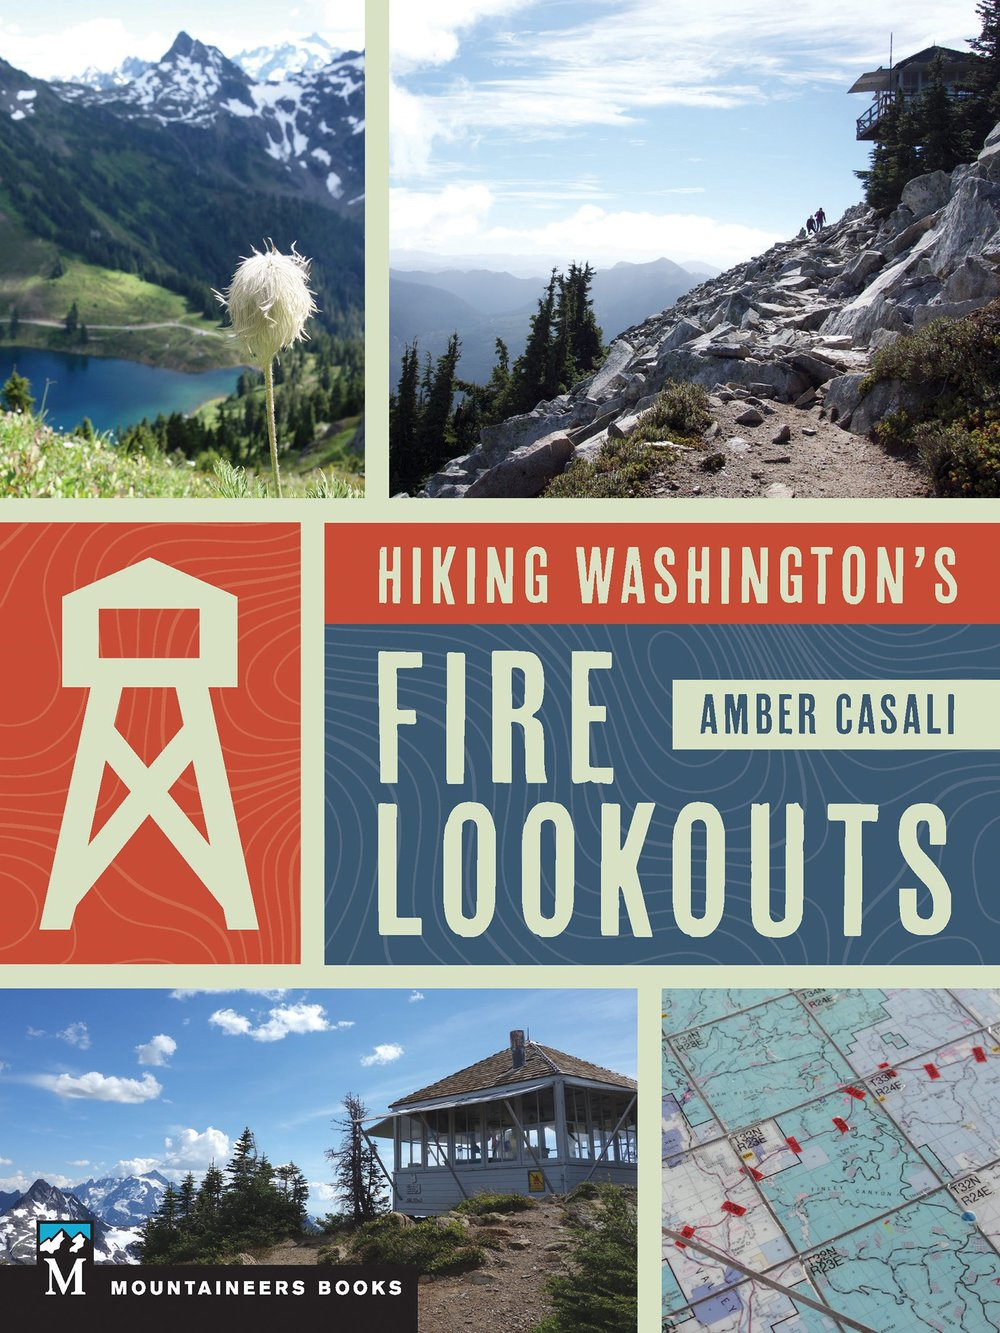 Hiking Washington's Fire Lookouts